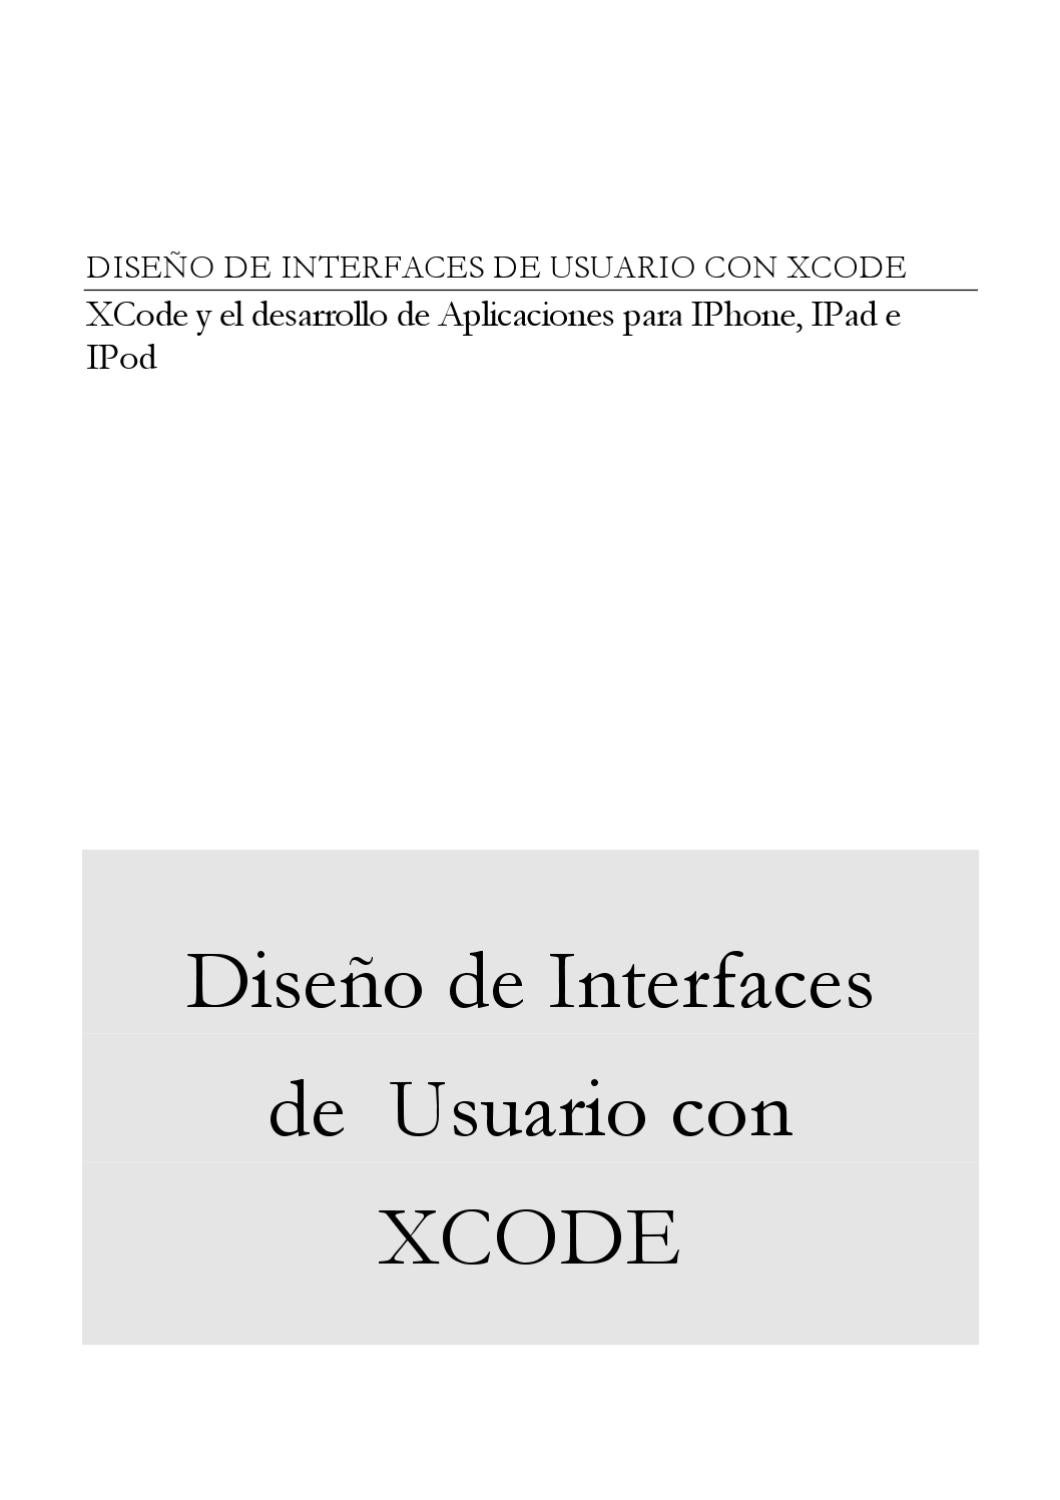 DISEÑO DE INTERFACES DE USUARIO CON XCODE by Manuel Cantero - issuu